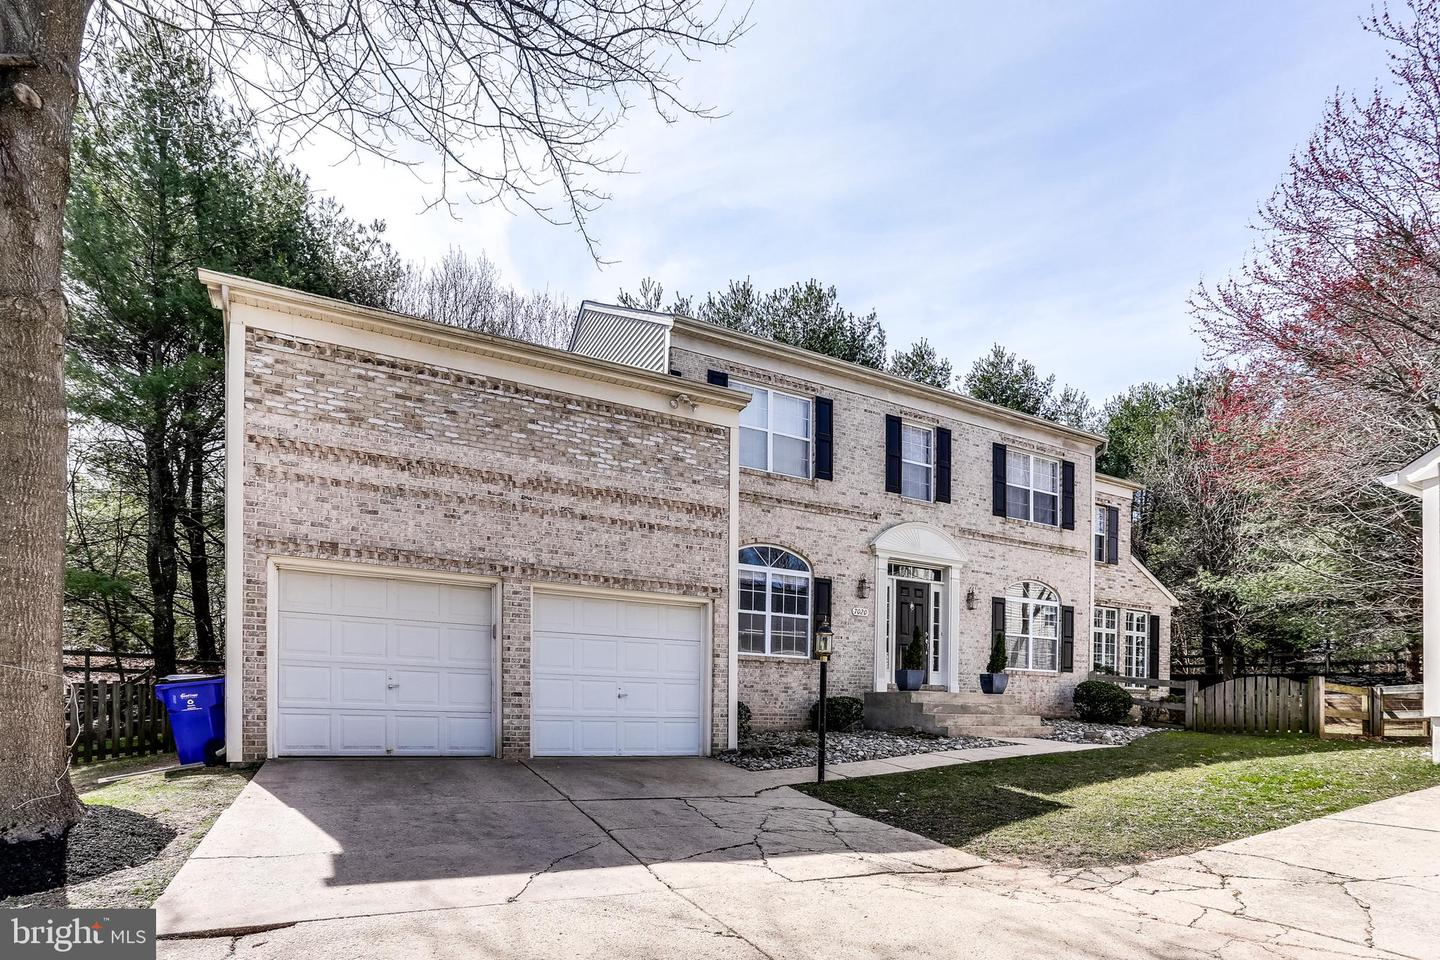 Single Family Home for Sale at 7020 Golden Seeds Row 7020 Golden Seeds Row Columbia, Maryland 21044 United States